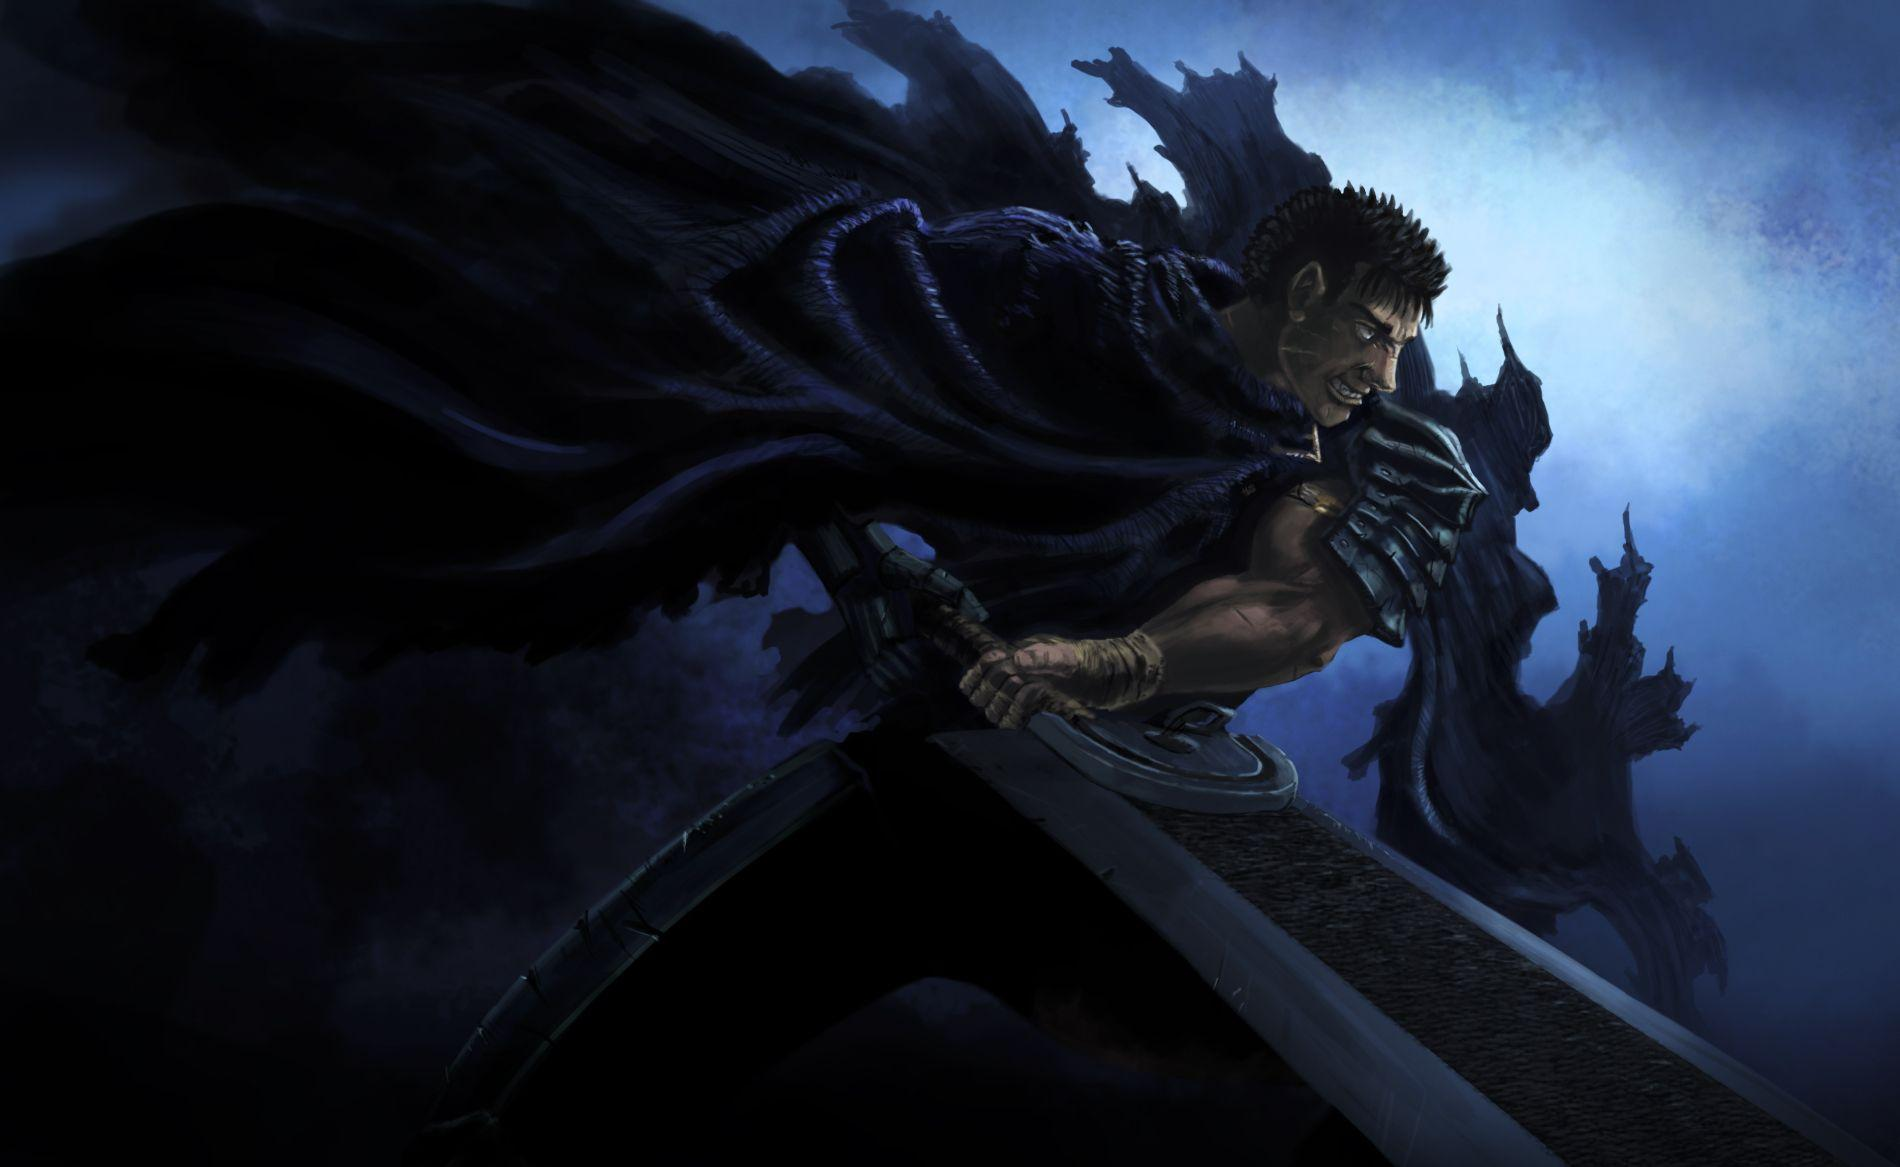 berserk wallpaper 4k - photo #29